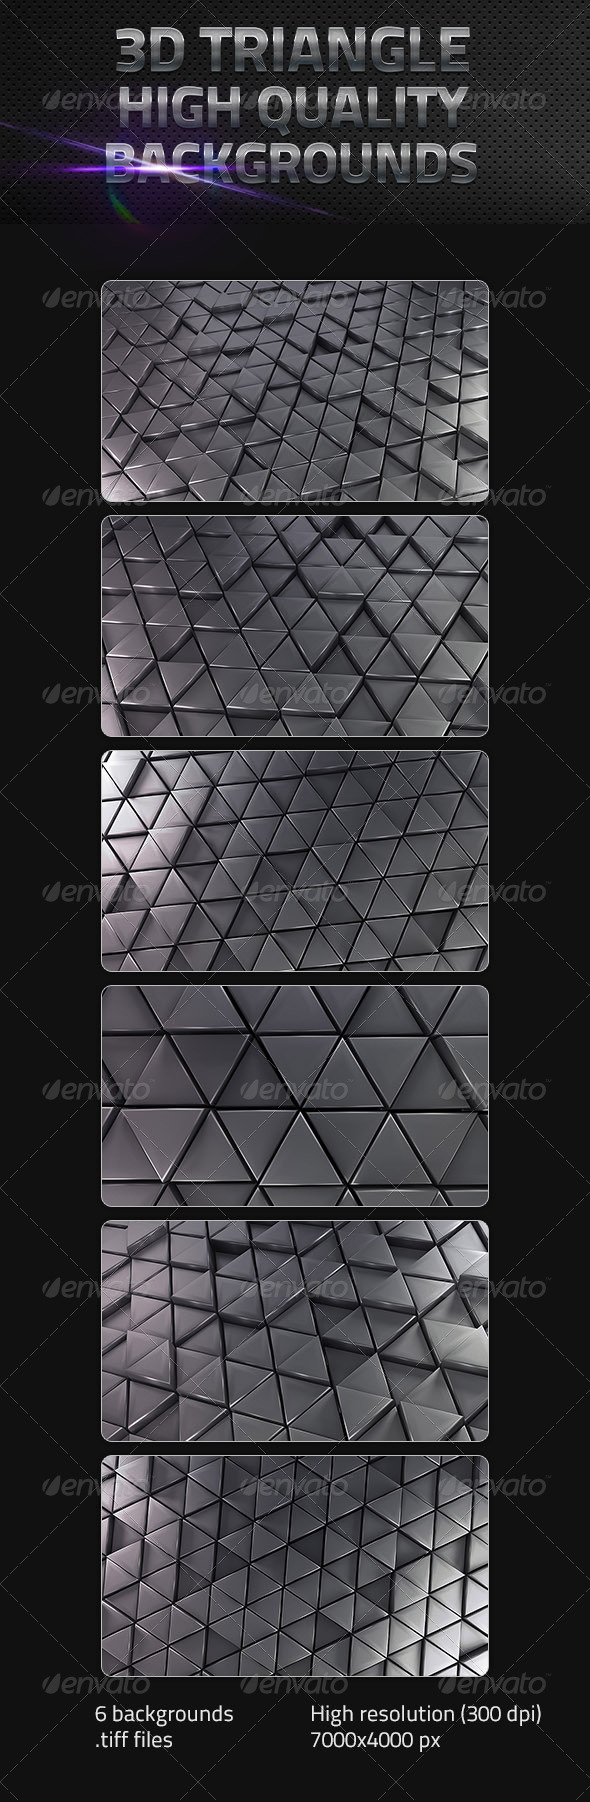 3D Triangle Backgrounds - 3D Backgrounds